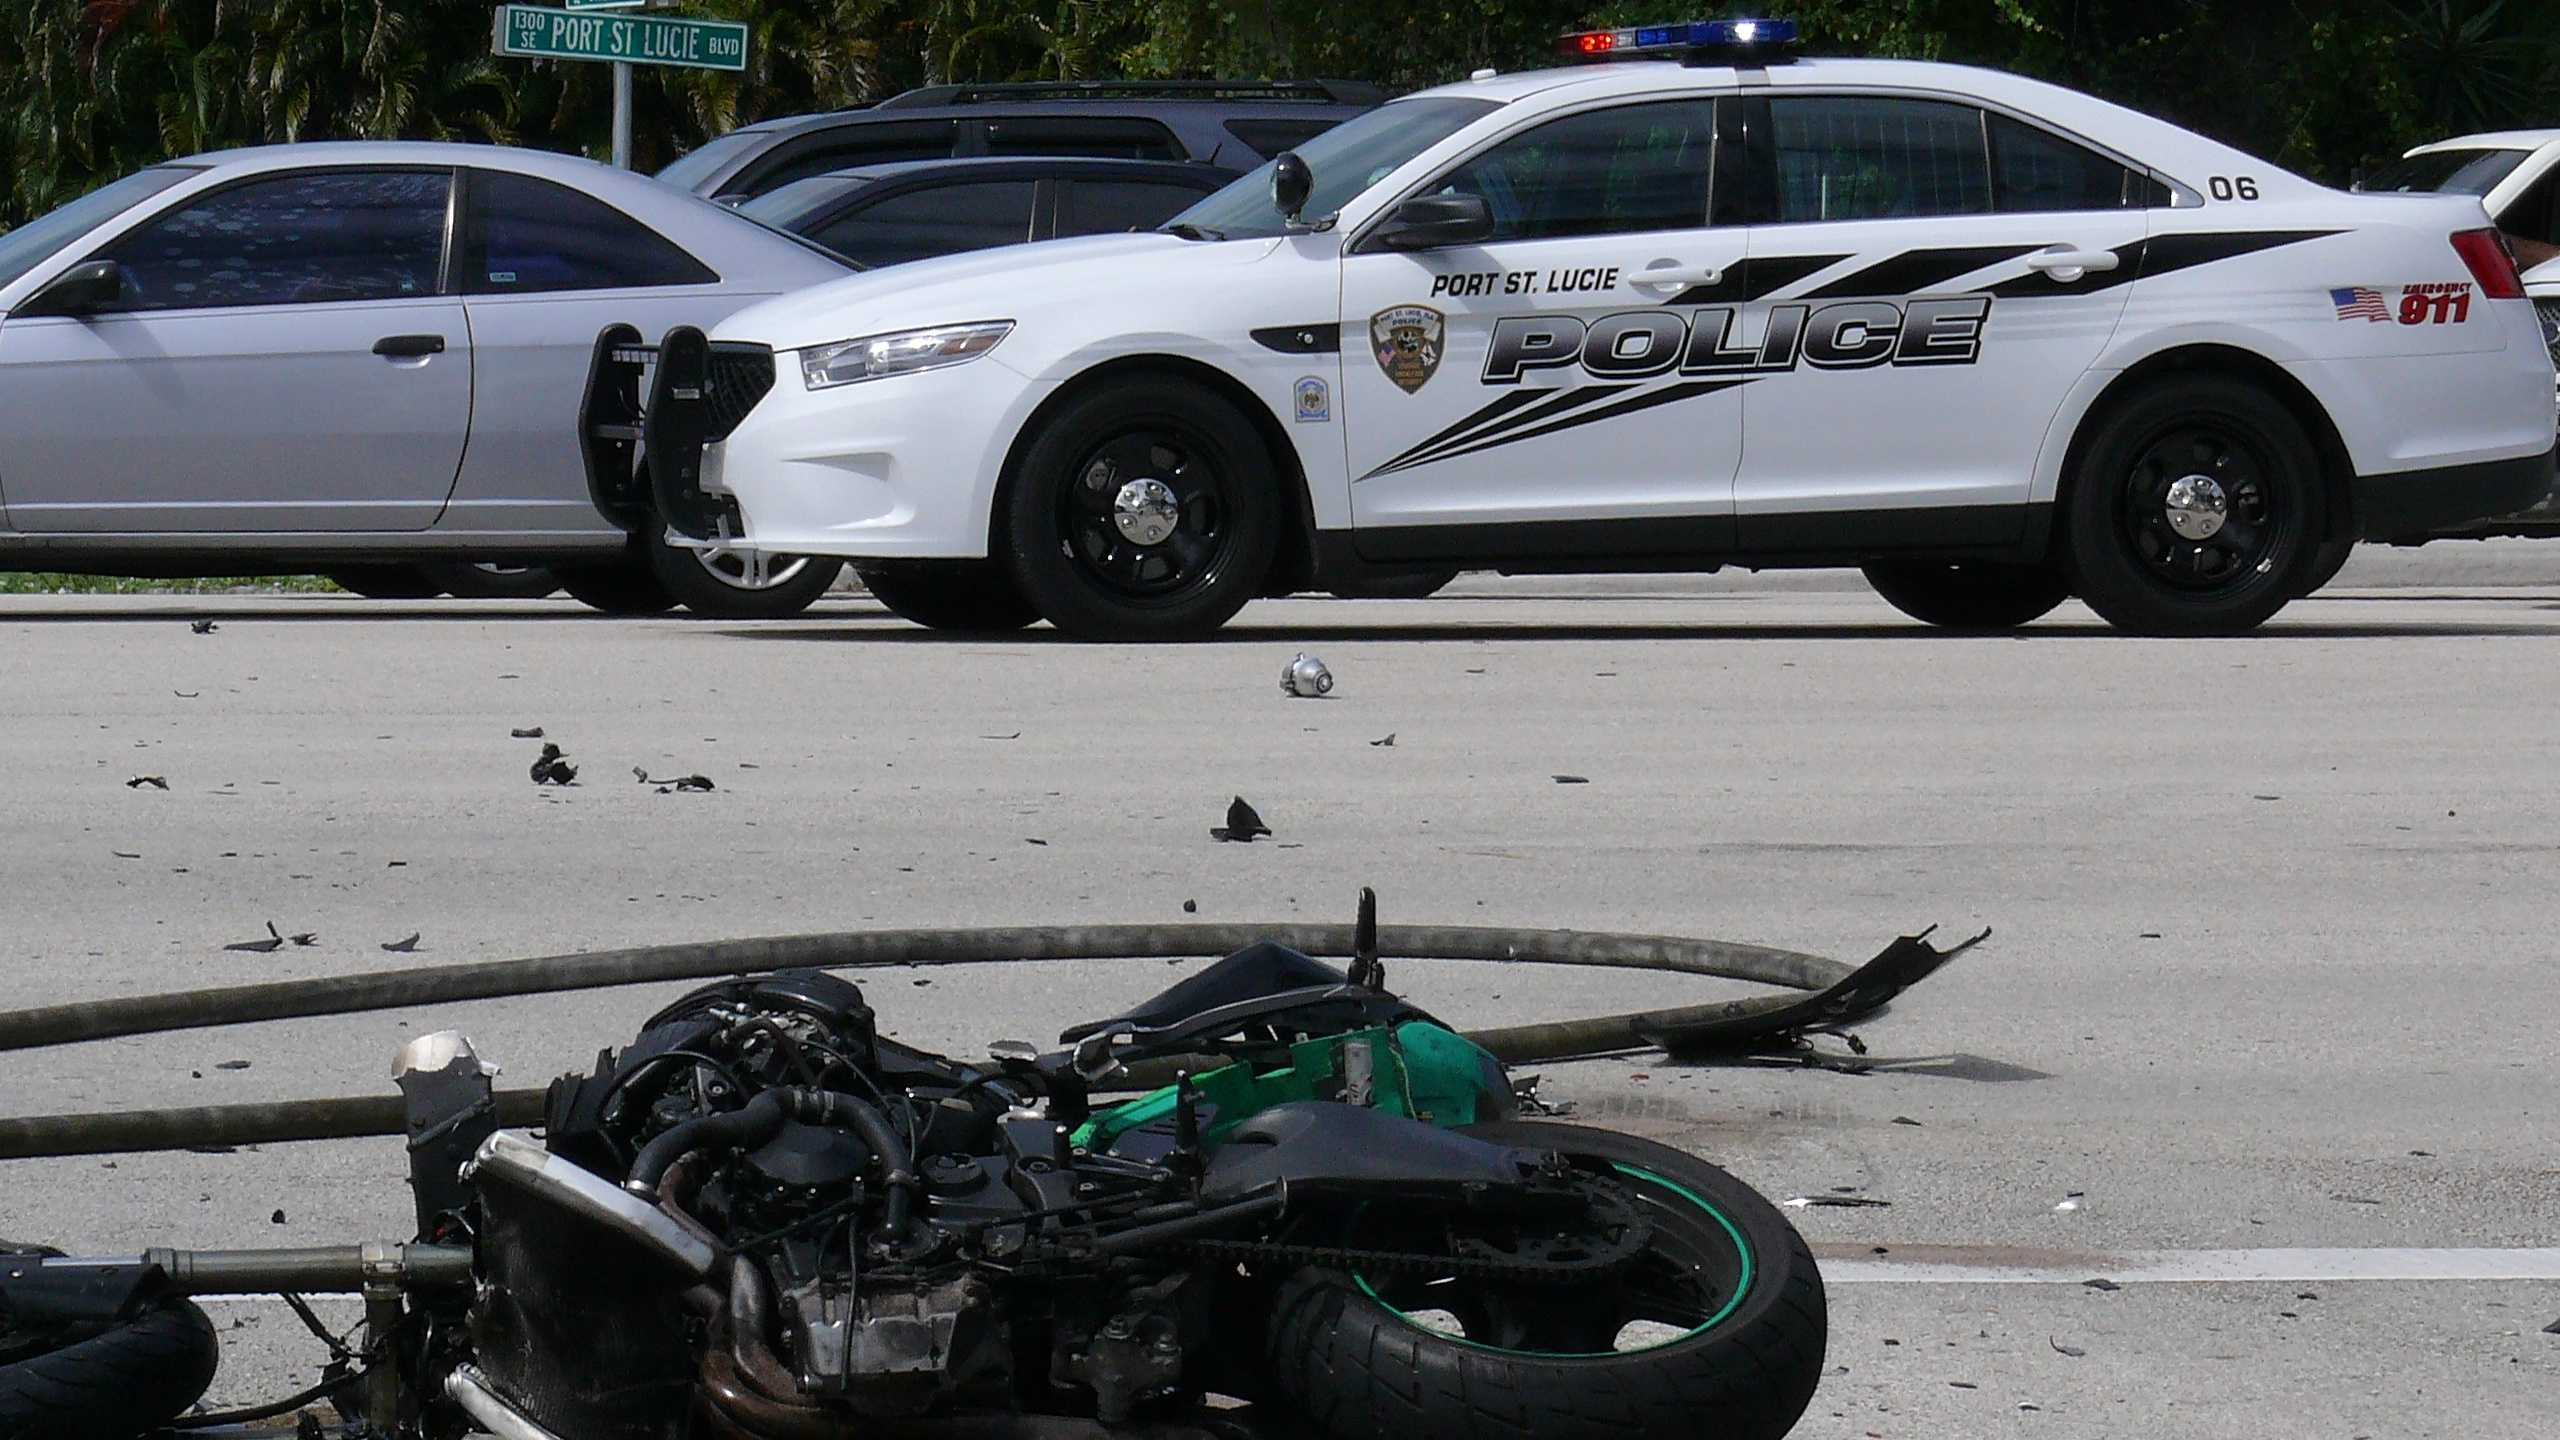 The 20-year-old driver of this motorcycle was killed in a collision with a bus in Port St. Lucie.